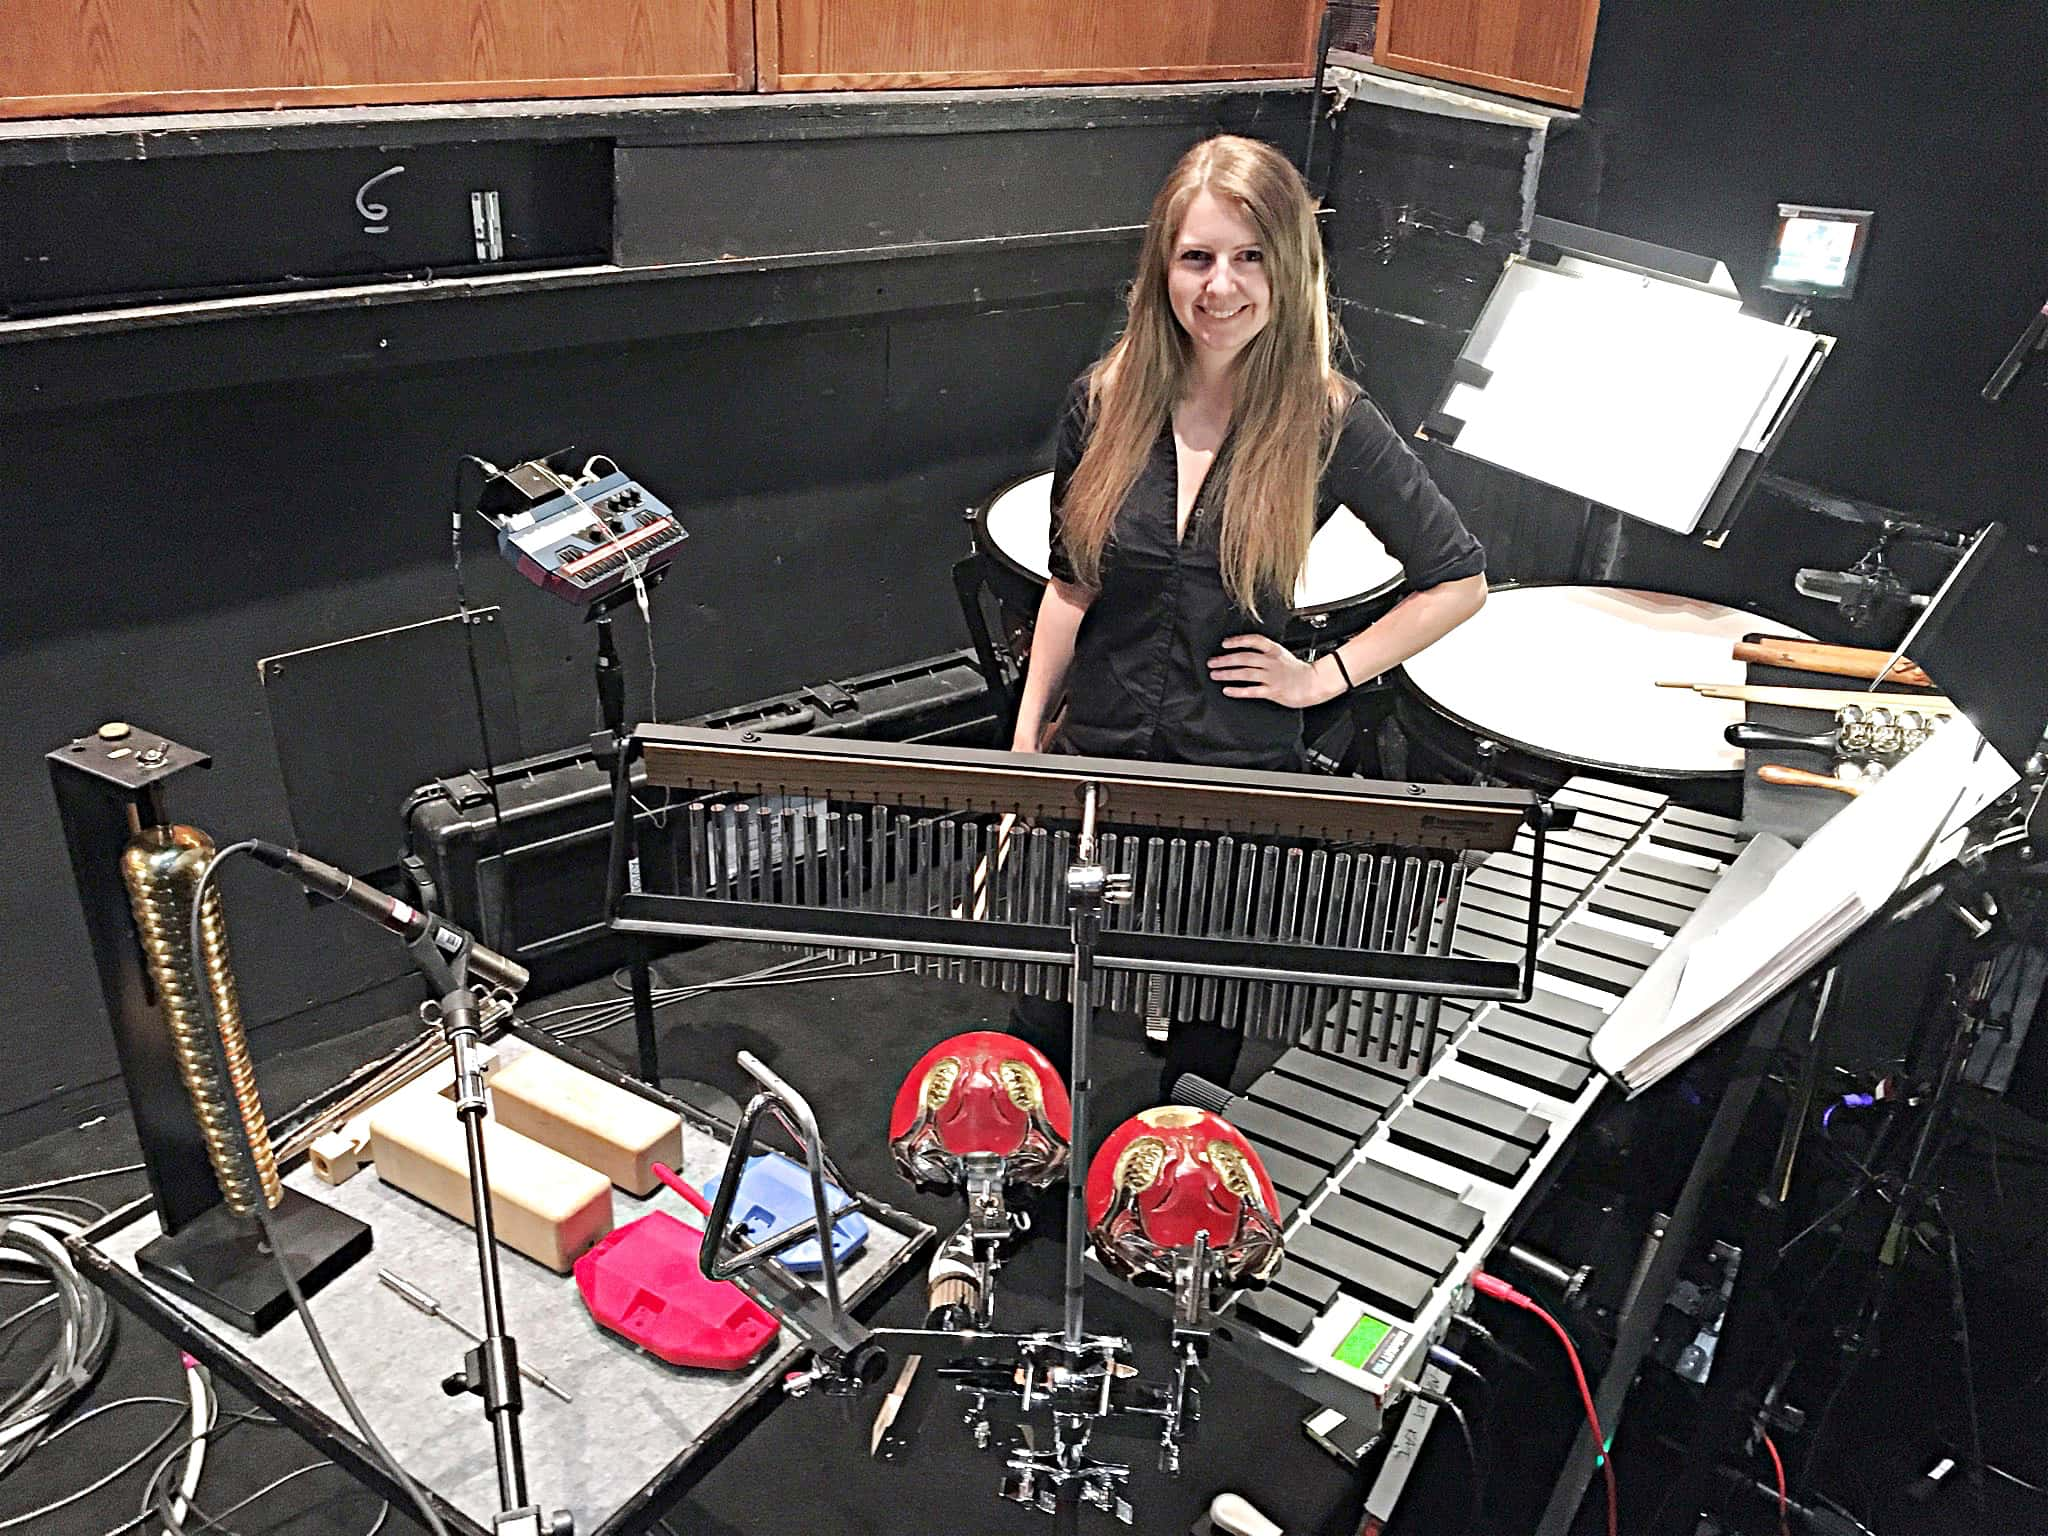 Laura Hamel's percussion setup for the National Tour of A Christmas Story at the McCallum Theatre in Palm Desert, California.